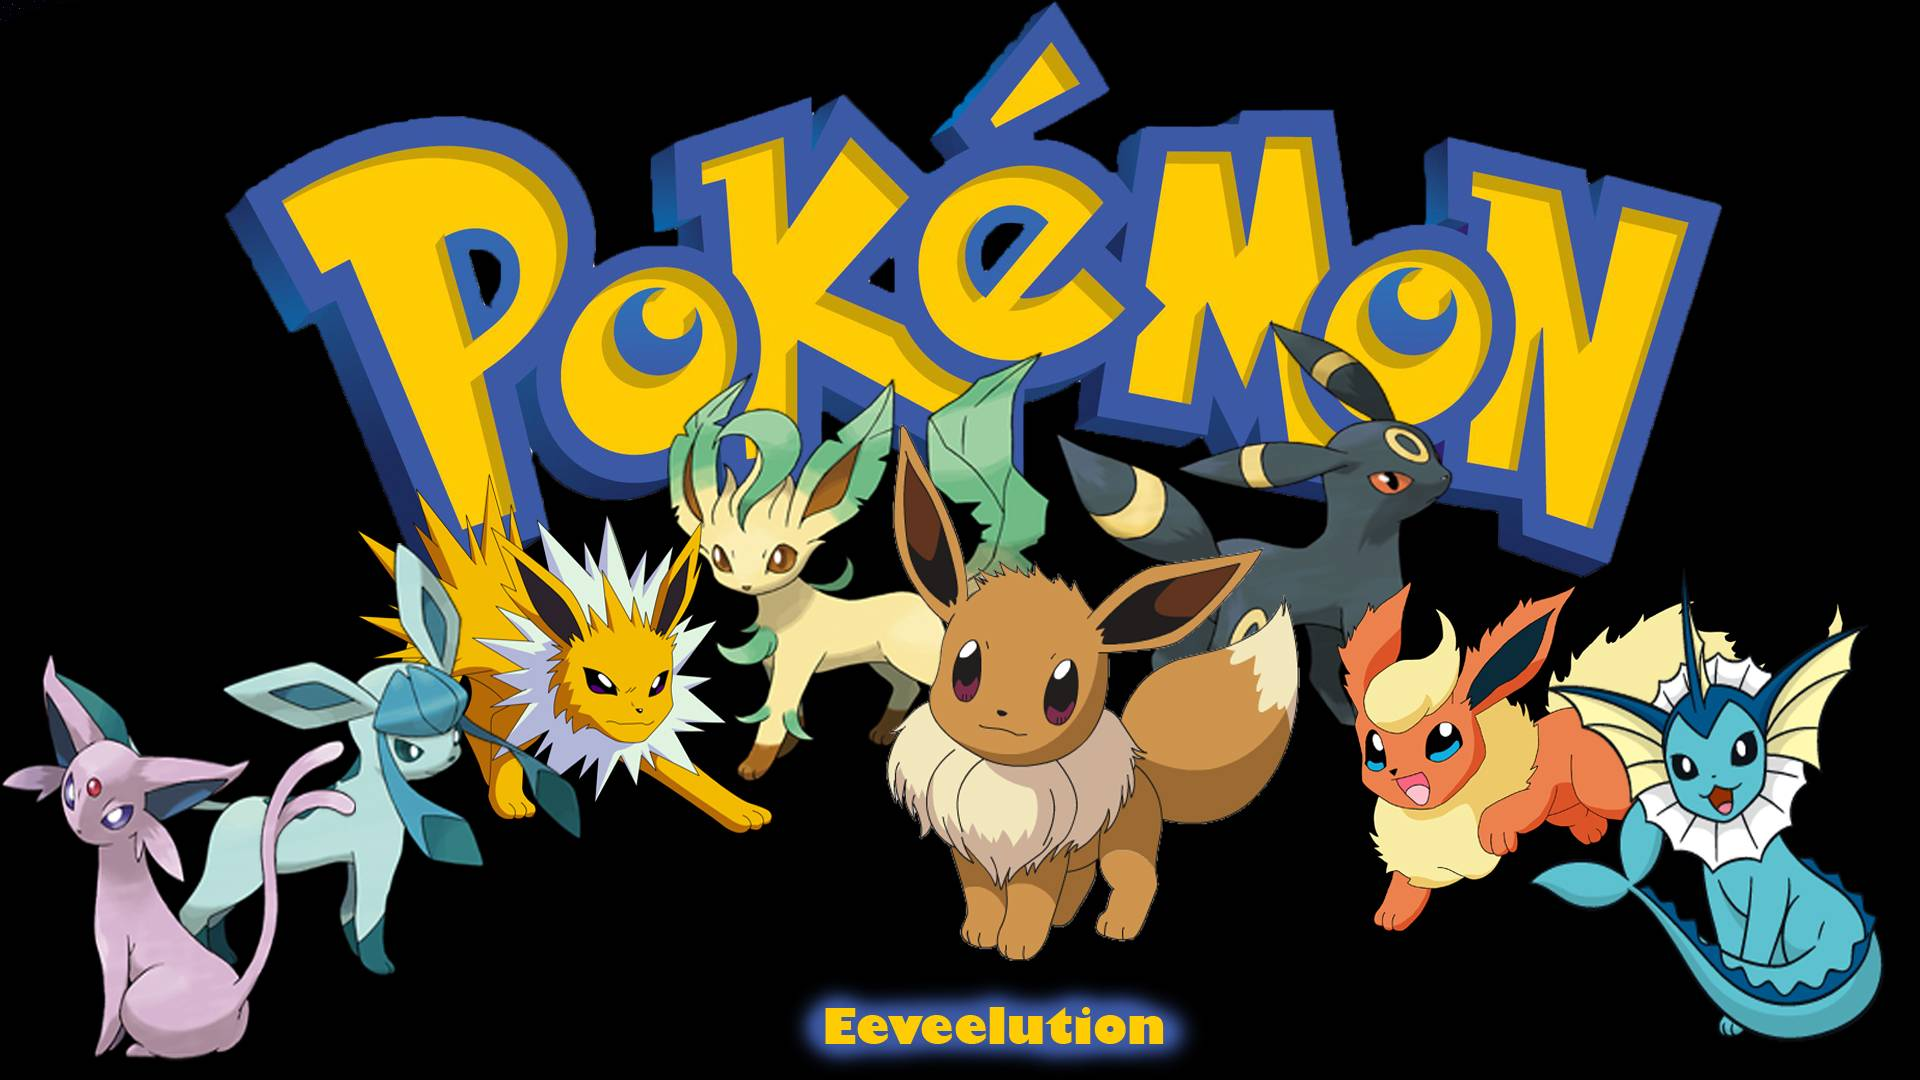 Eevee Live Wallpaper WallpaperSafari